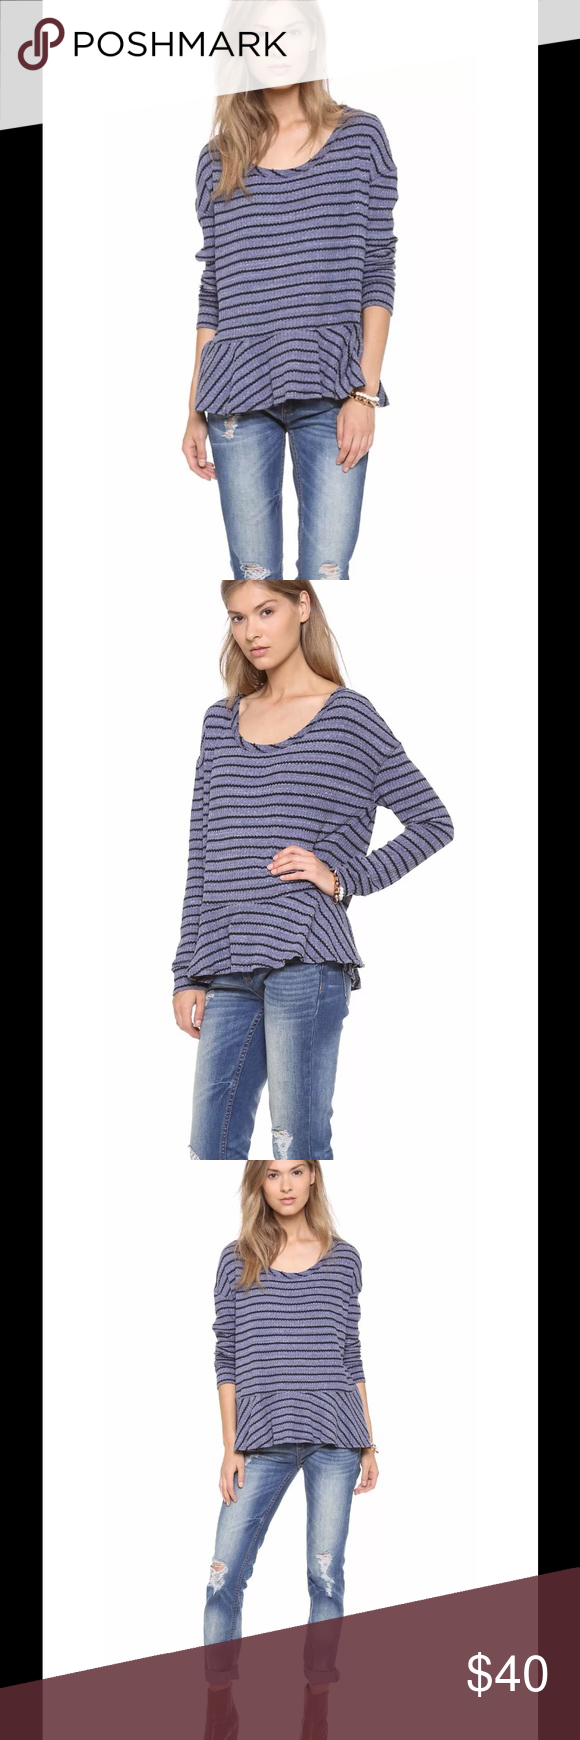 Auntie Em Thermal Peplum Shirt Navy Combo Striped NWT Free People We The Free Auntie Em Thermal Peplum Shirt Navy Combo Striped   Size Medium  This FREE PEOPLE Auntie Em Thermal Peplum Shirt is made from 59% cotton, 34% polyester and 7% rayon in navy combo striped design.  It features long sleeves, distressed unfinished edges, scoop neck, boxy fit, drop shoulders, machine washable and is brand new with tags! MEASUREMENTS:   Pit to Pit:  20in. Length (Top of Shoulder to Hem):  25in. Sleeves…